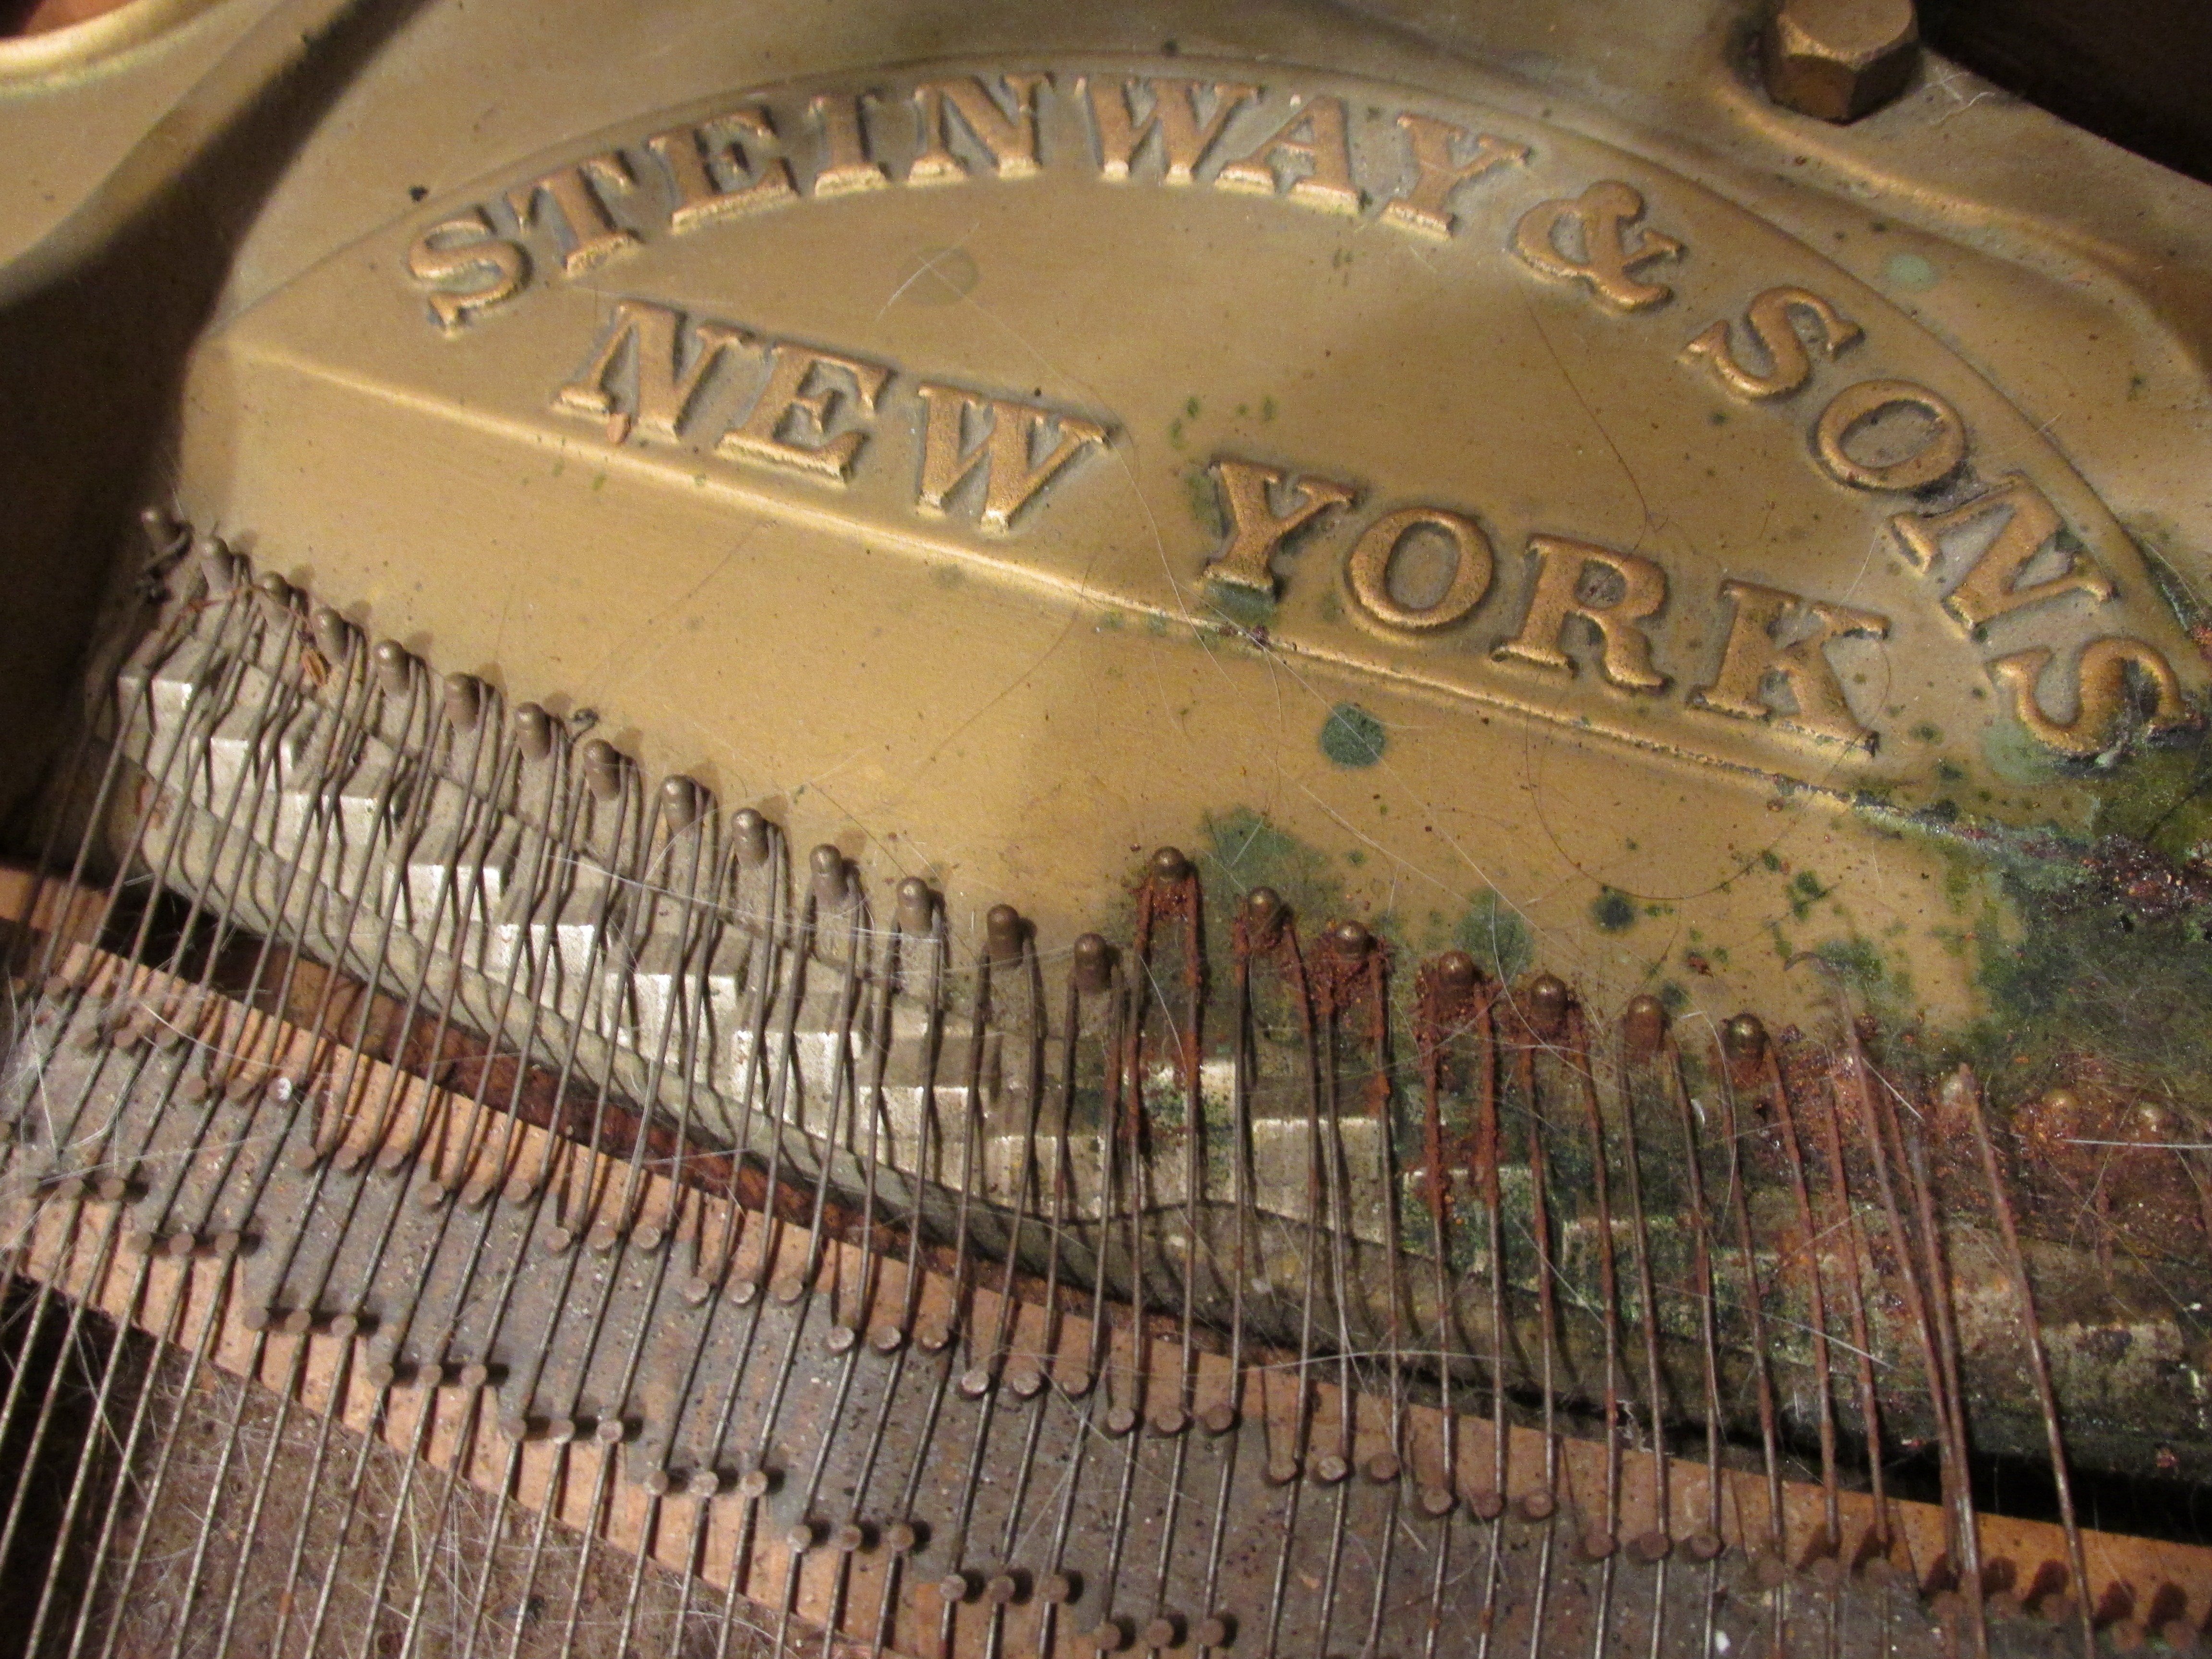 Ace Piano Repairs, Tunes, and Rebuilds Pianos of Metro Detroit Michigan and Metro Detroit Michigan